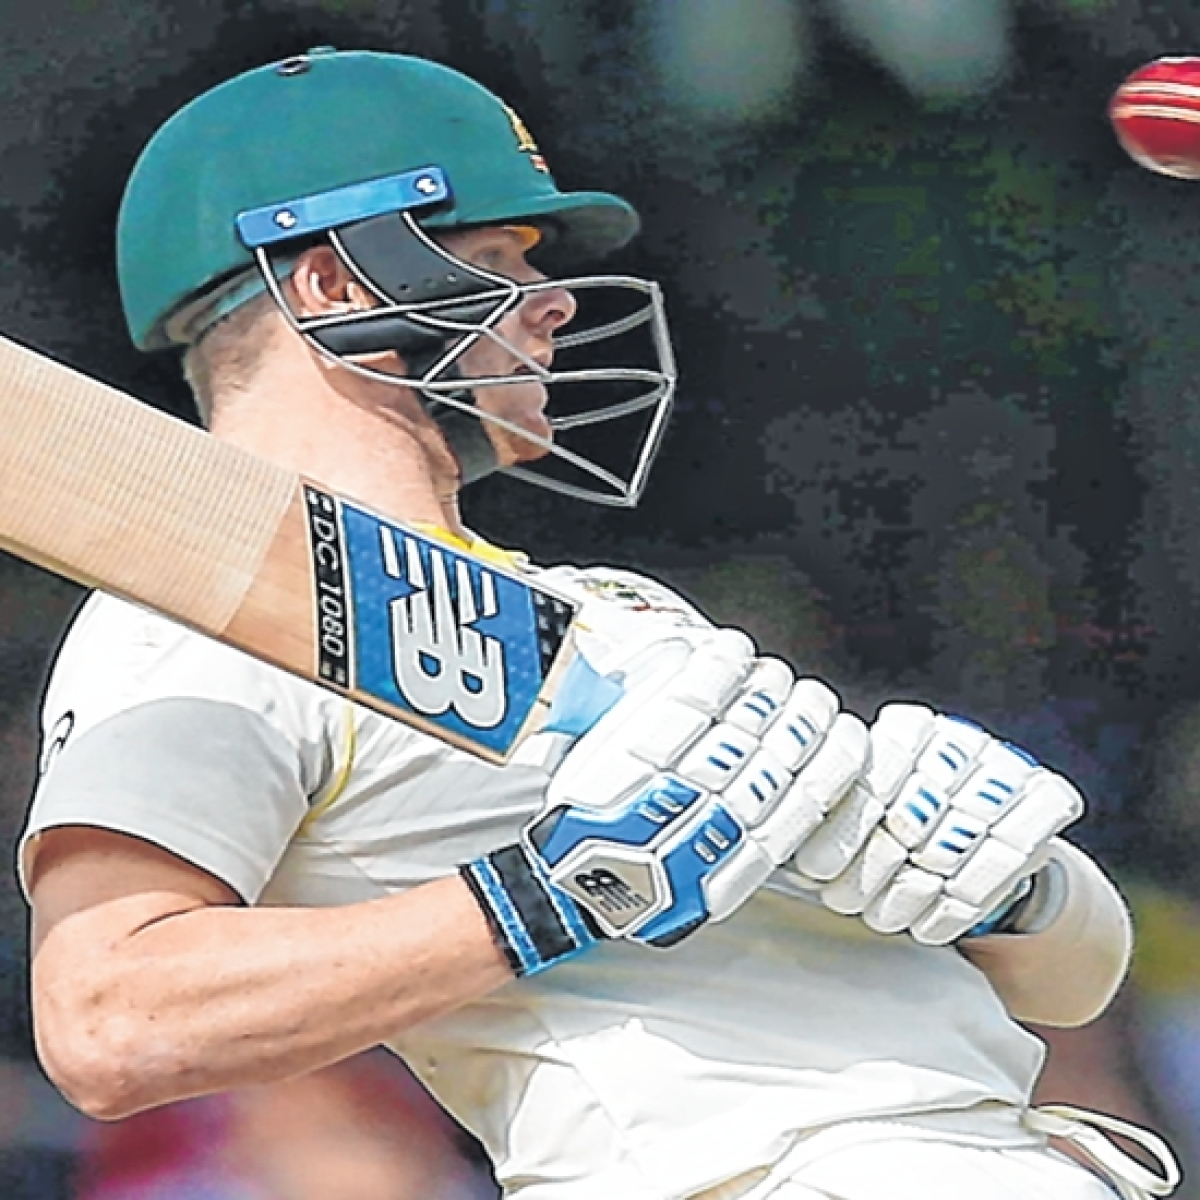 What next in cricket: neck guards?